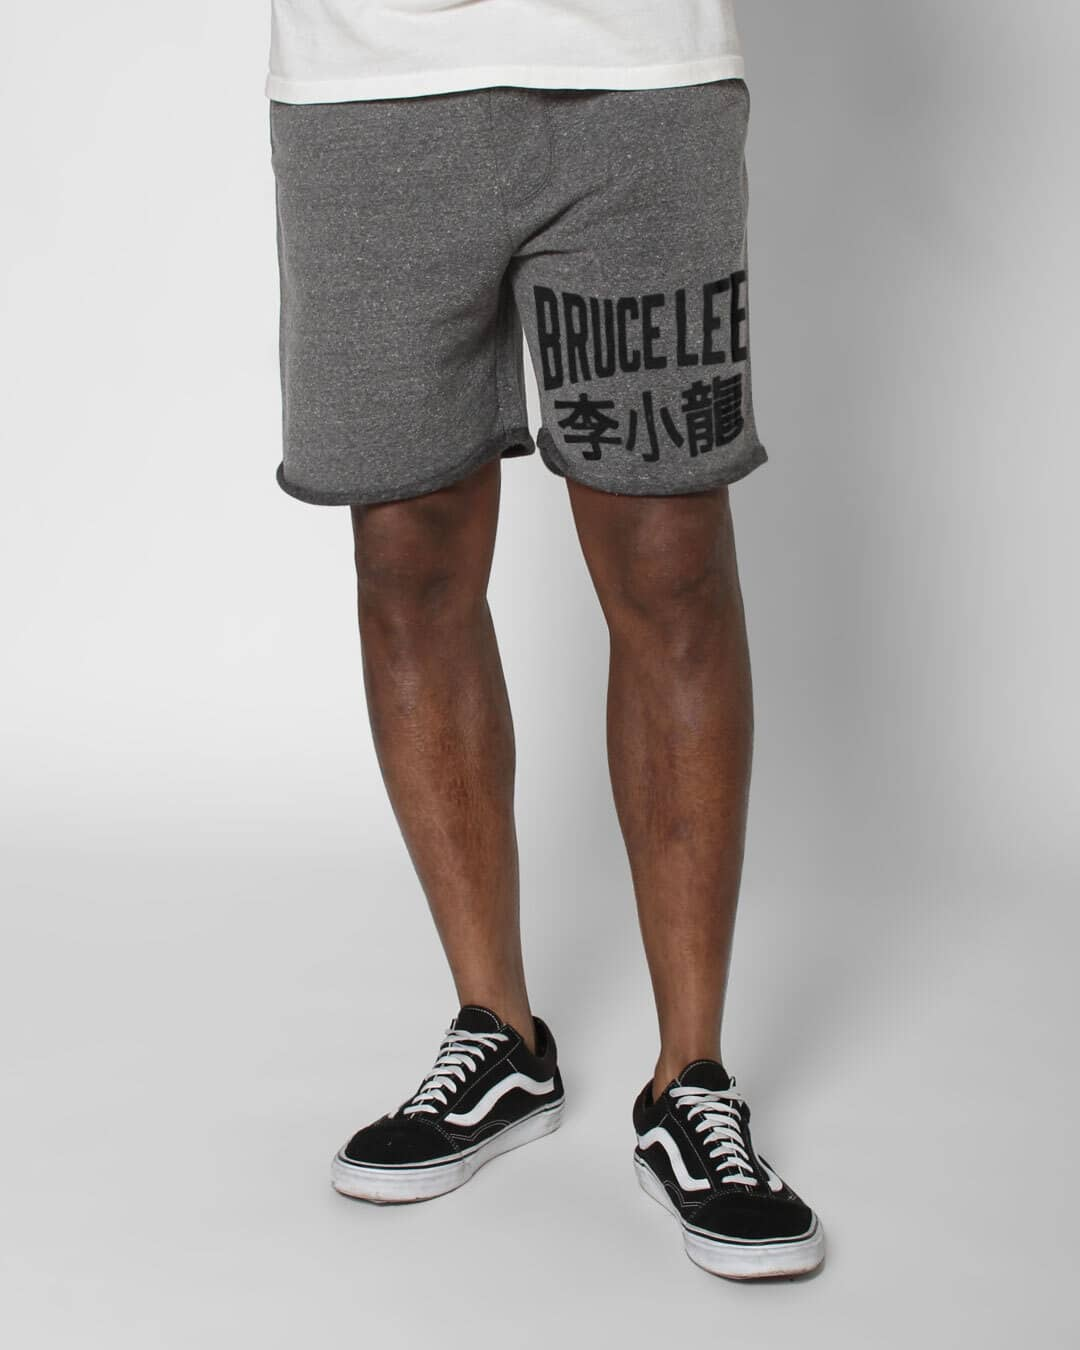 Bruce Lee Dragon Shorts - Roots of Inc dba Roots of Fight